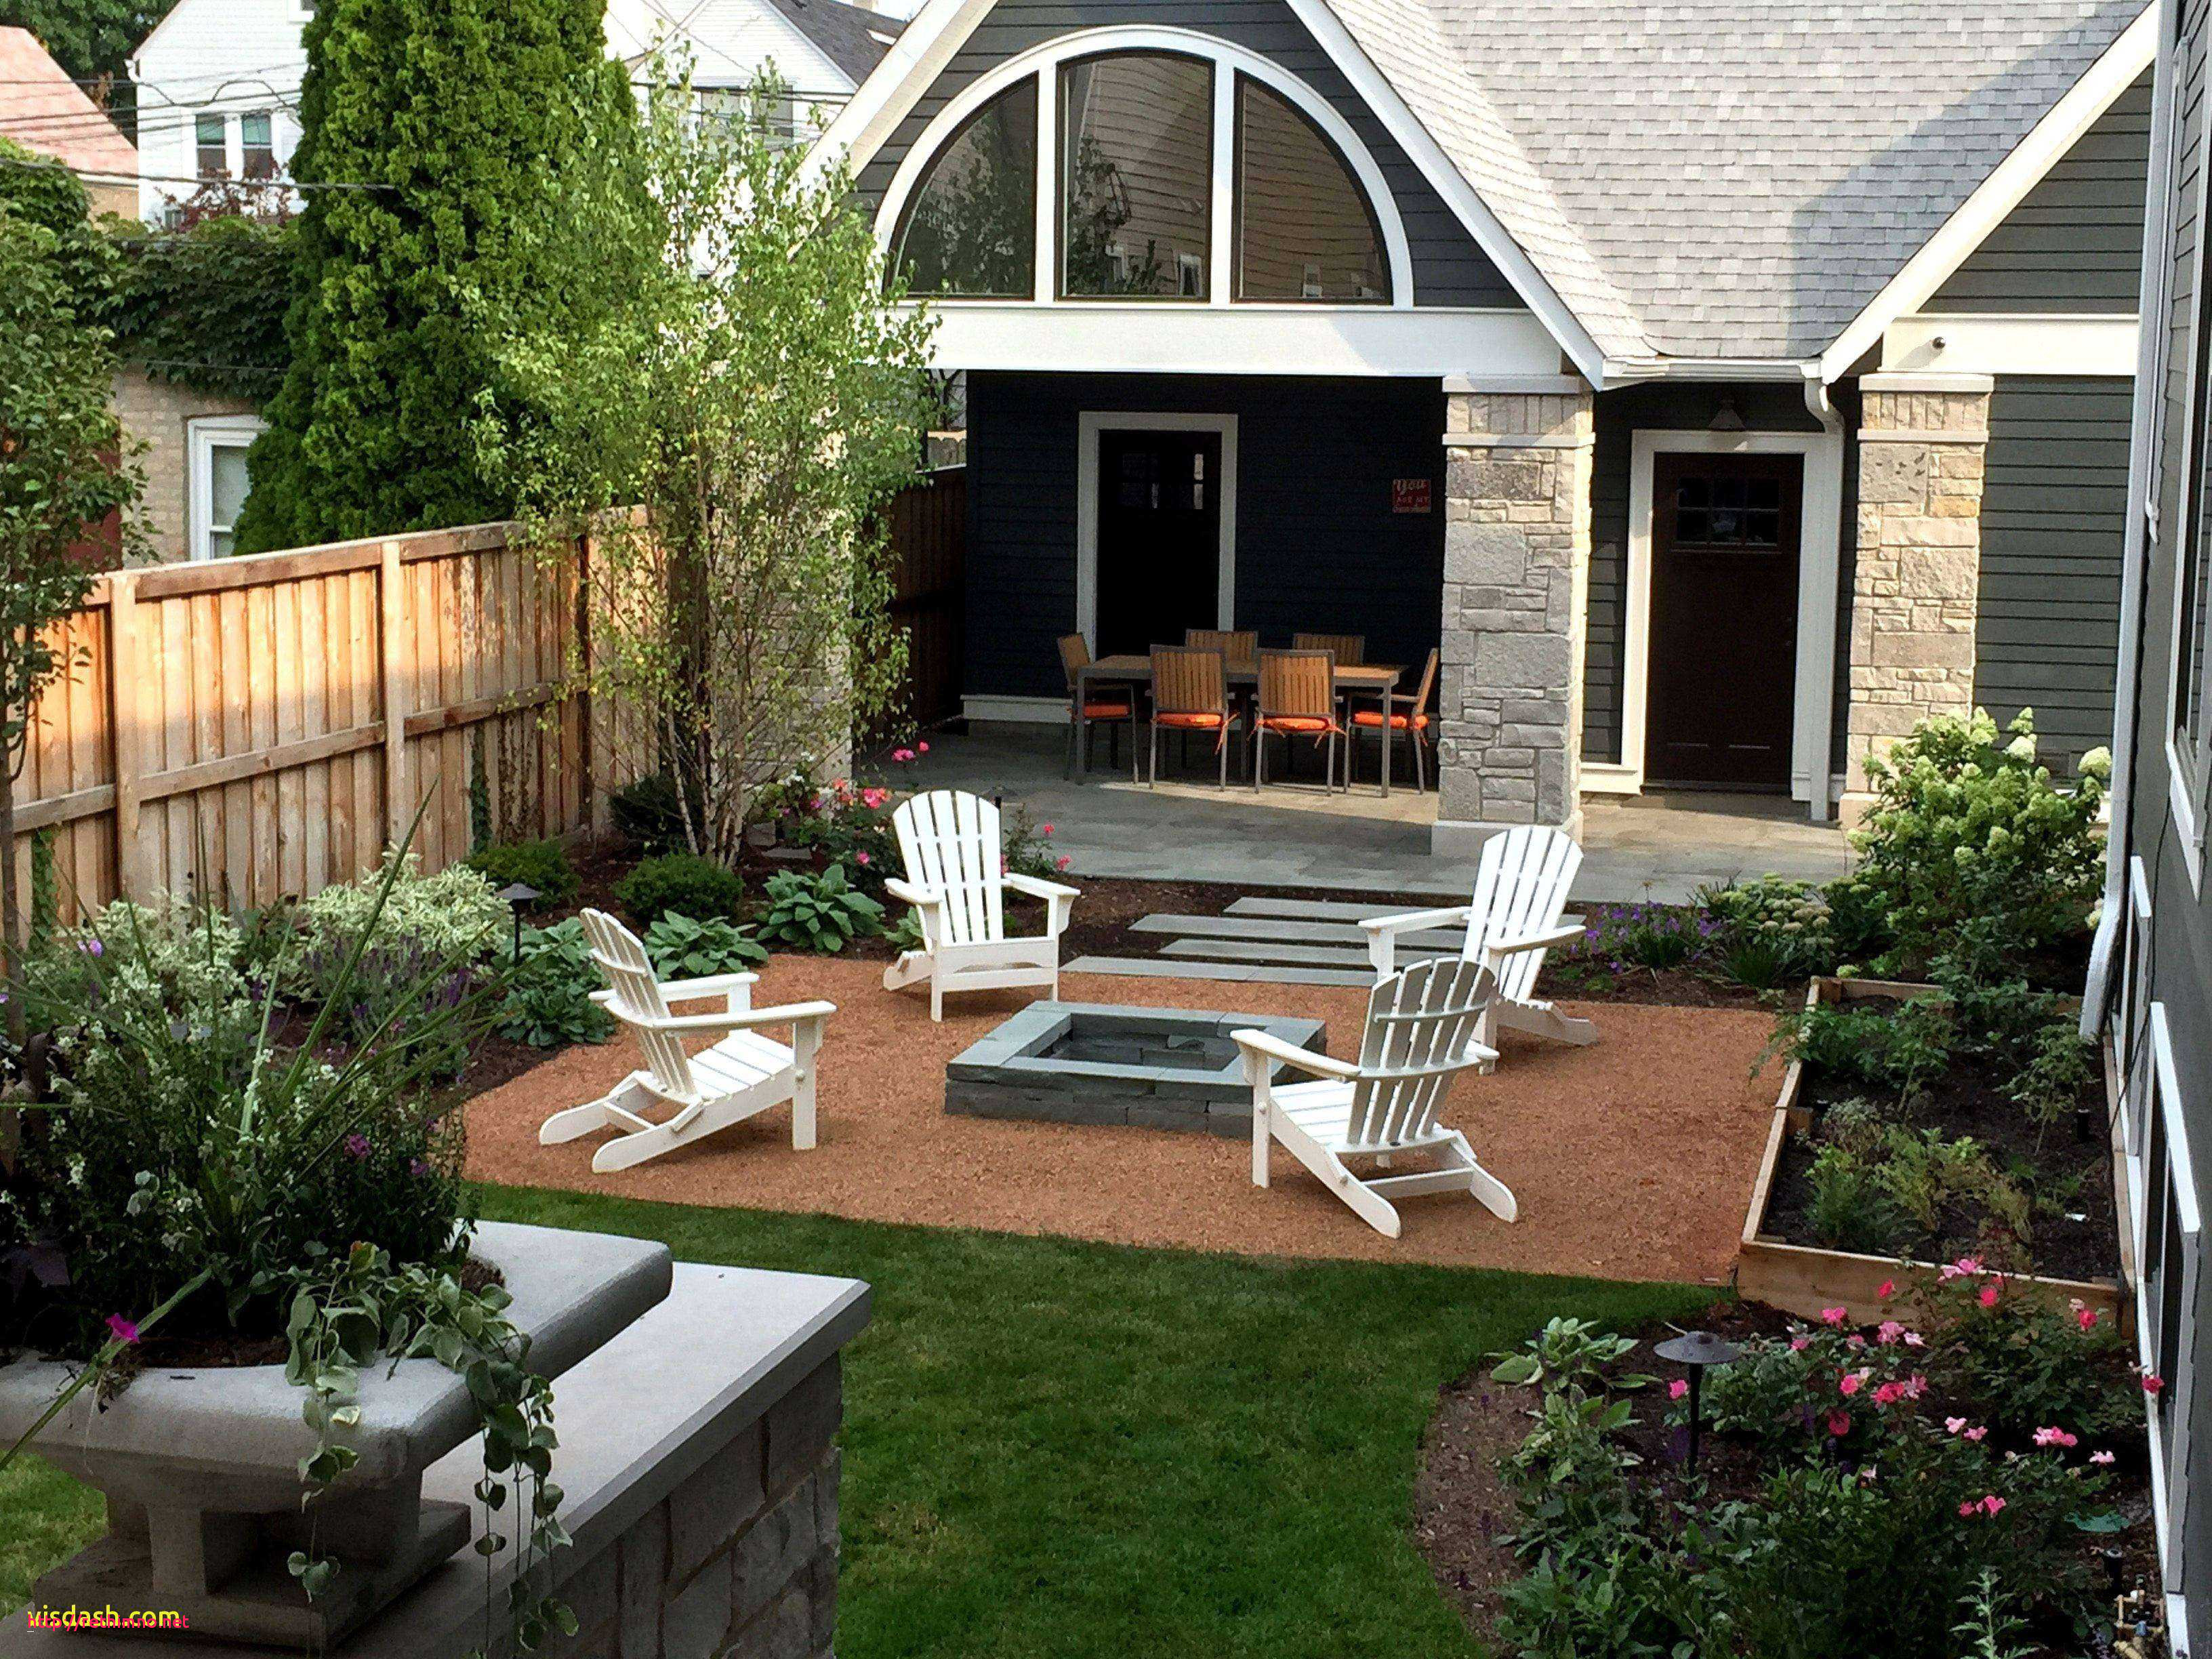 Elegant Backyard Barbecue Design Ideas Rethimno within 14 Clever Tricks of How to Craft Backyard Bbq Ideas